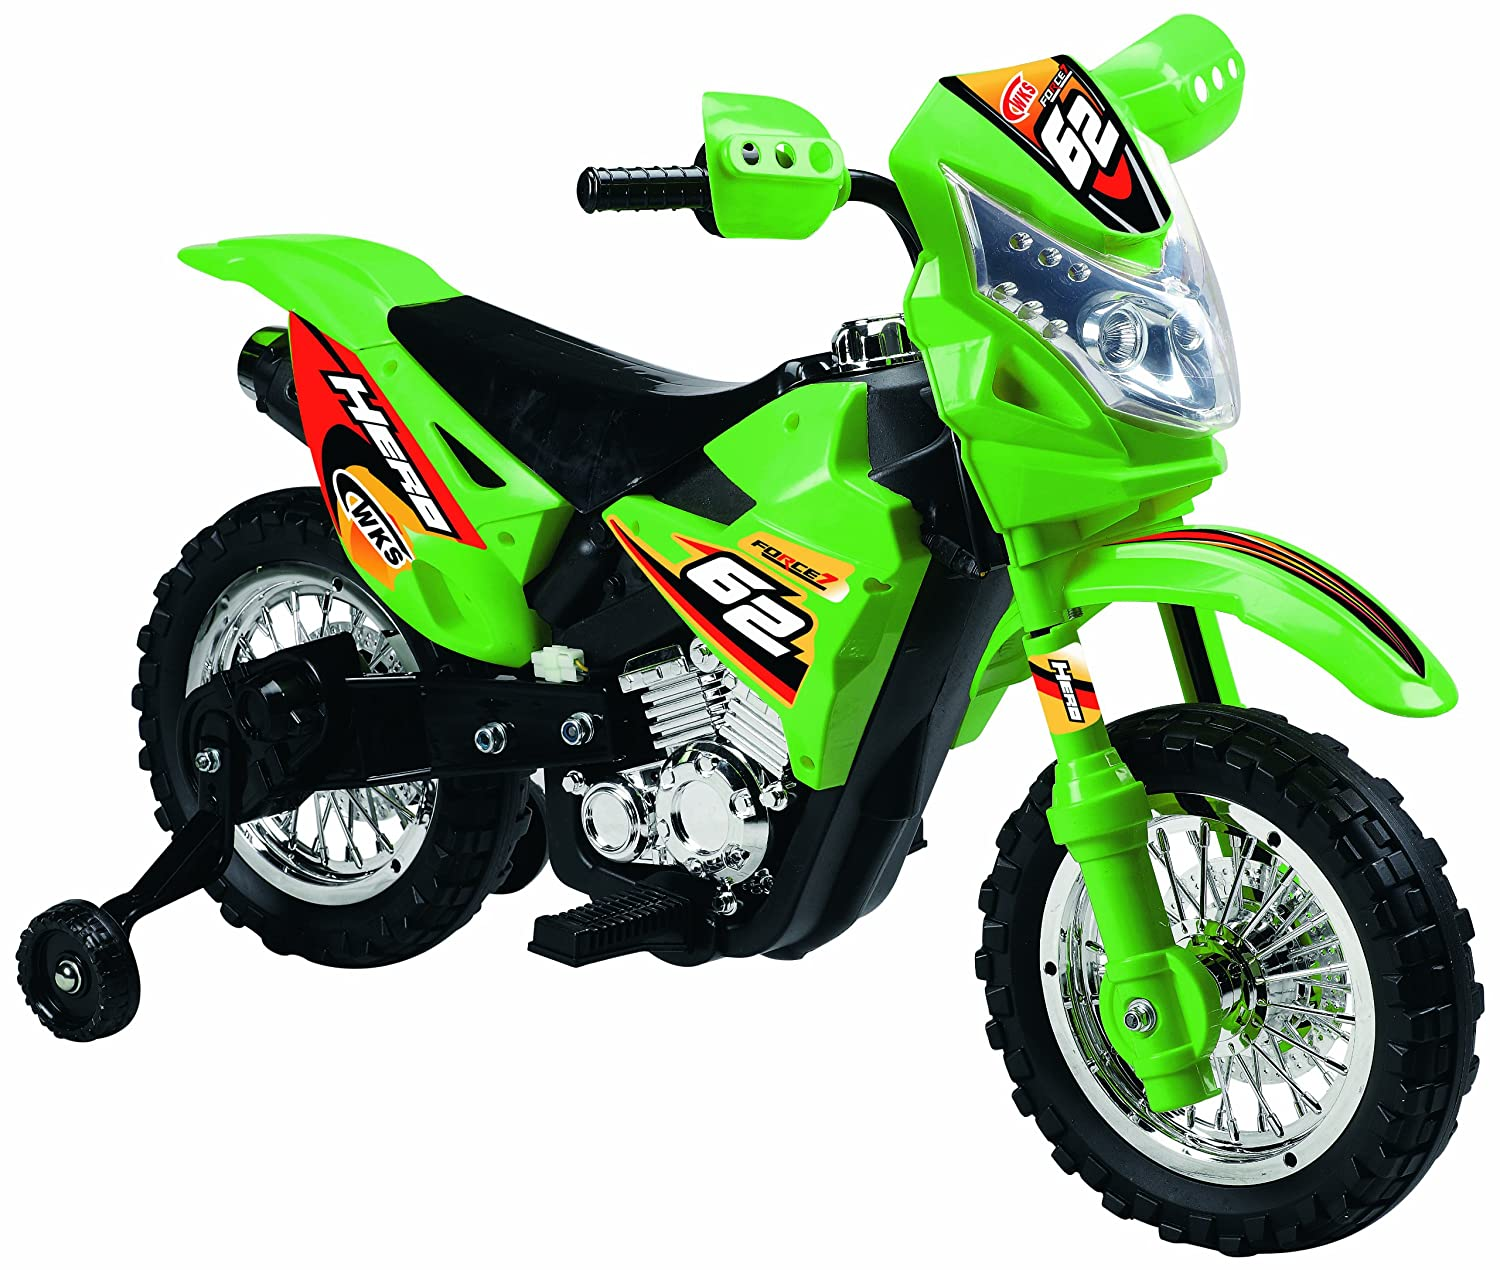 Dirt Bikes For Kids With Training Wheels V Kids Dirt Bike Green